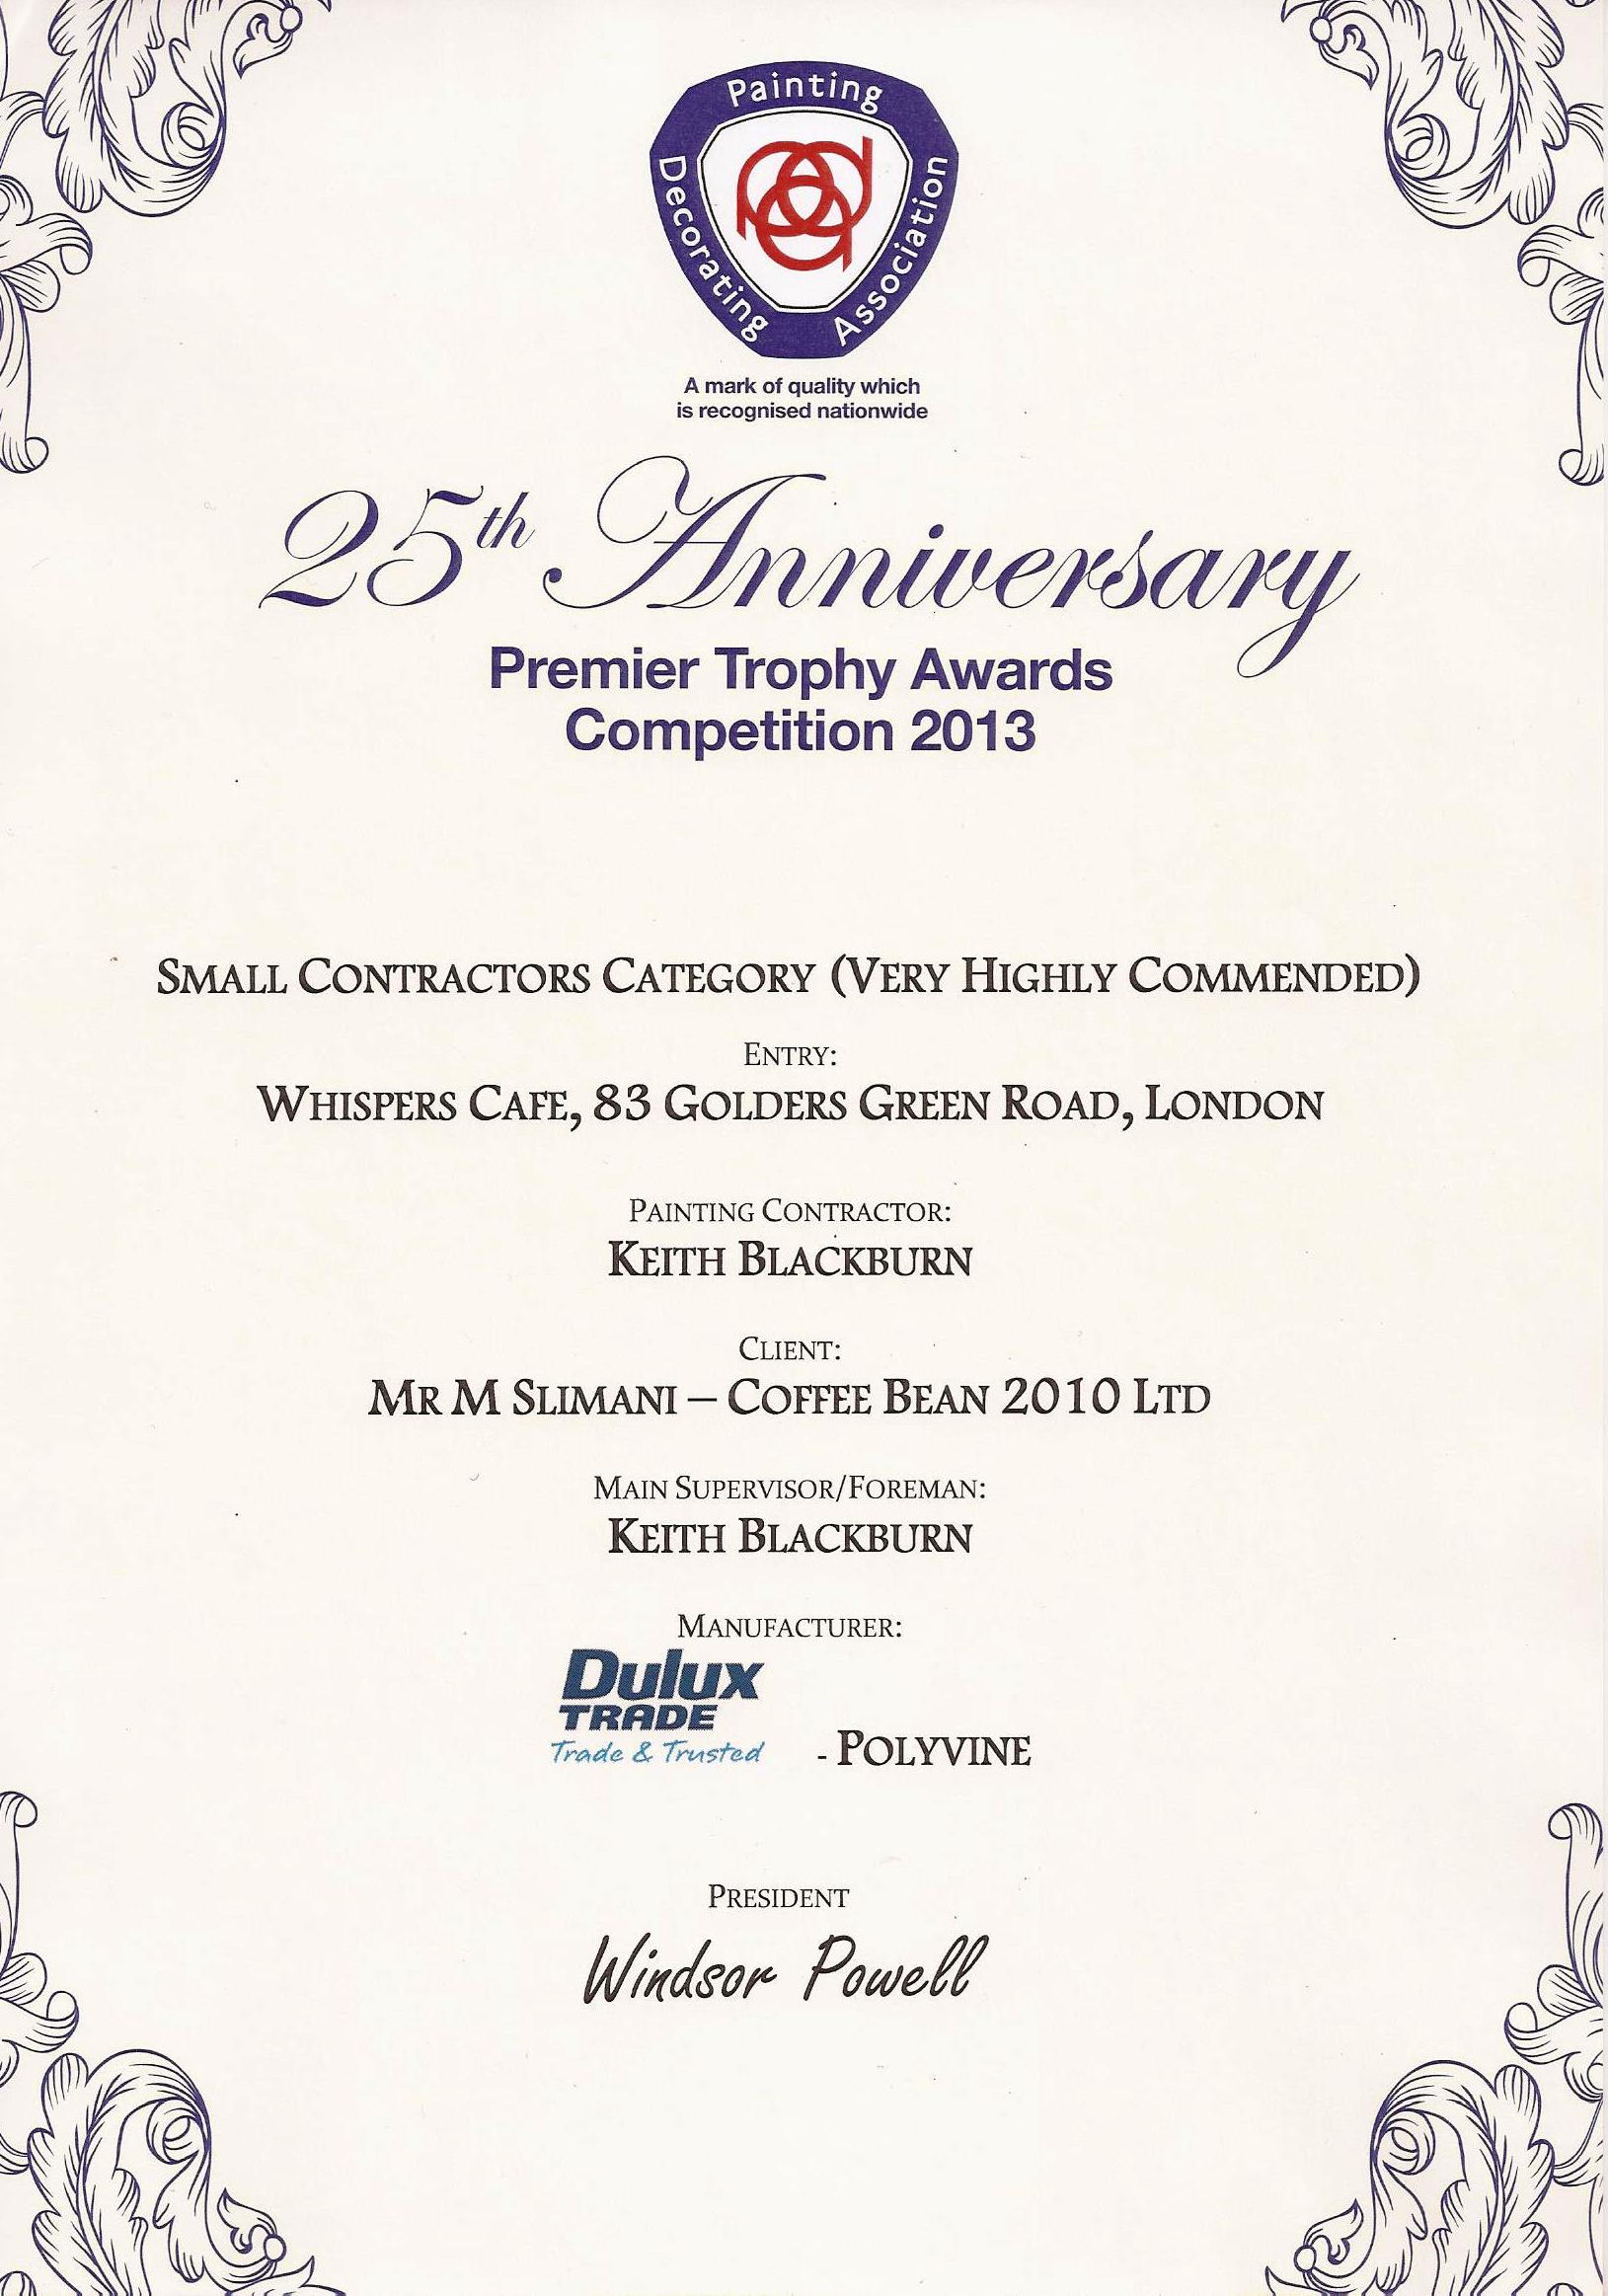 The award certificate.